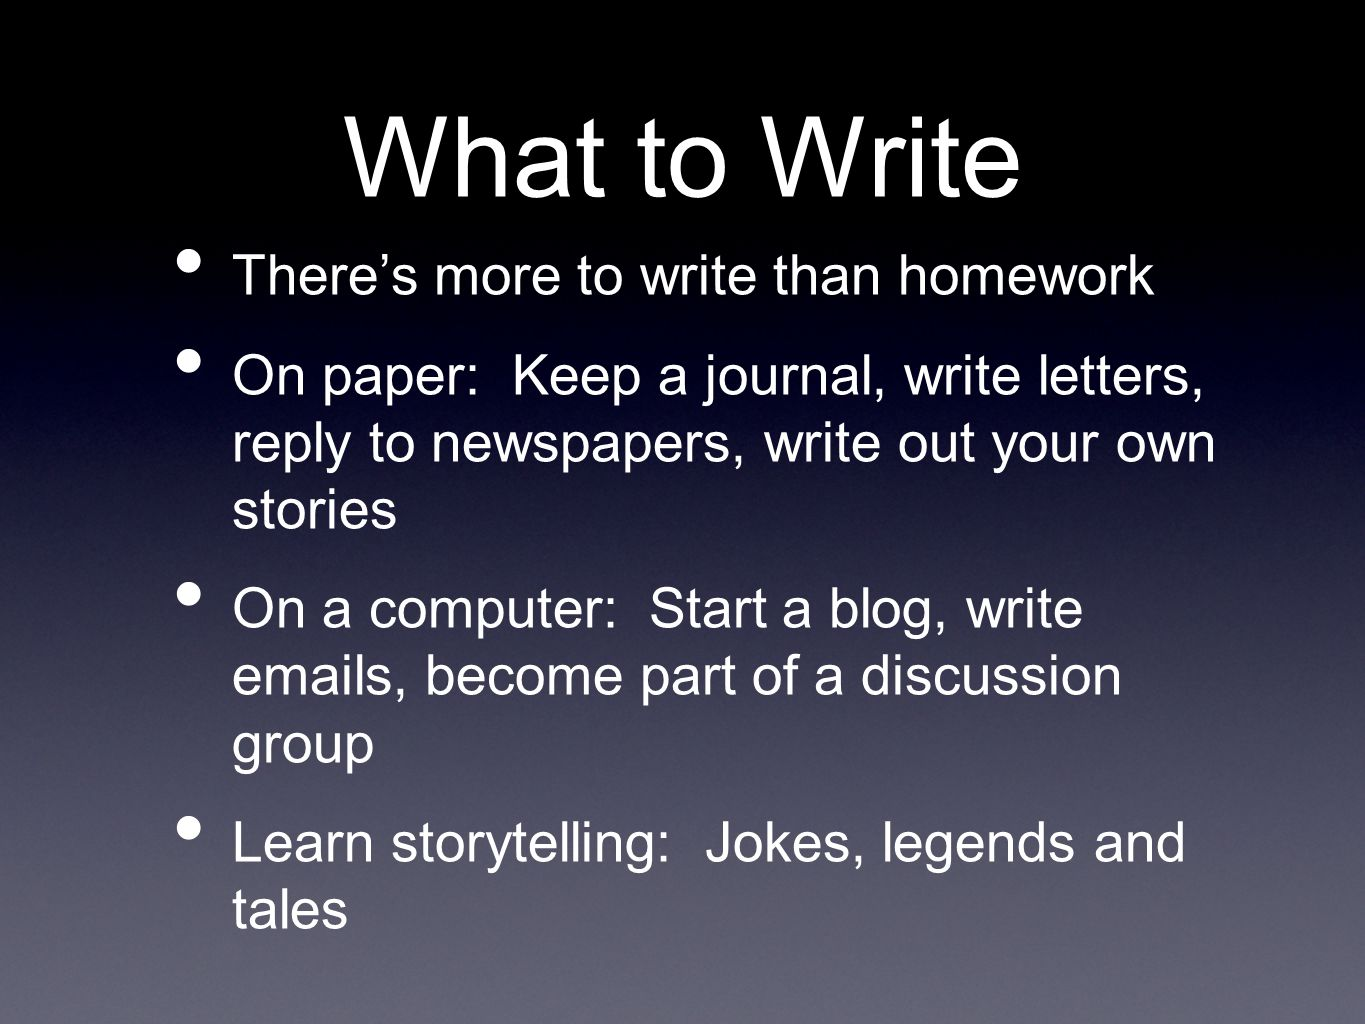 What to Write There's more to write than homework On paper: Keep a journal, write letters, reply to newspapers, write out your own stories On a computer: Start a blog, write emails, become part of a discussion group Learn storytelling: Jokes, legends and tales